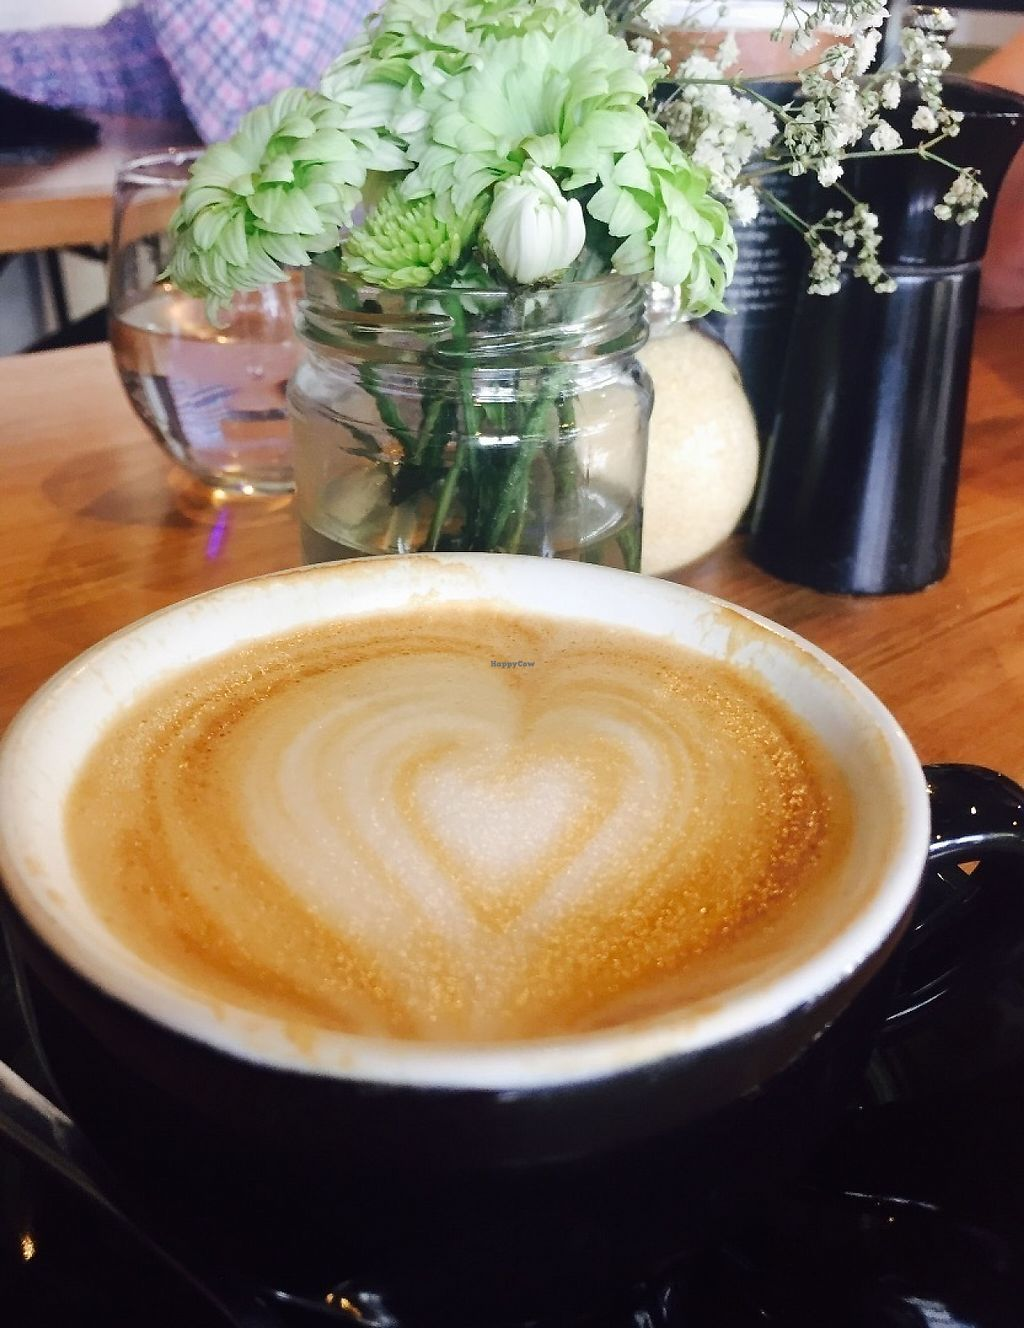 """Photo of Reunion Cafe  by <a href=""""/members/profile/karlaess"""">karlaess</a> <br/>Almond flat white <br/> May 20, 2017  - <a href='/contact/abuse/image/91301/260538'>Report</a>"""